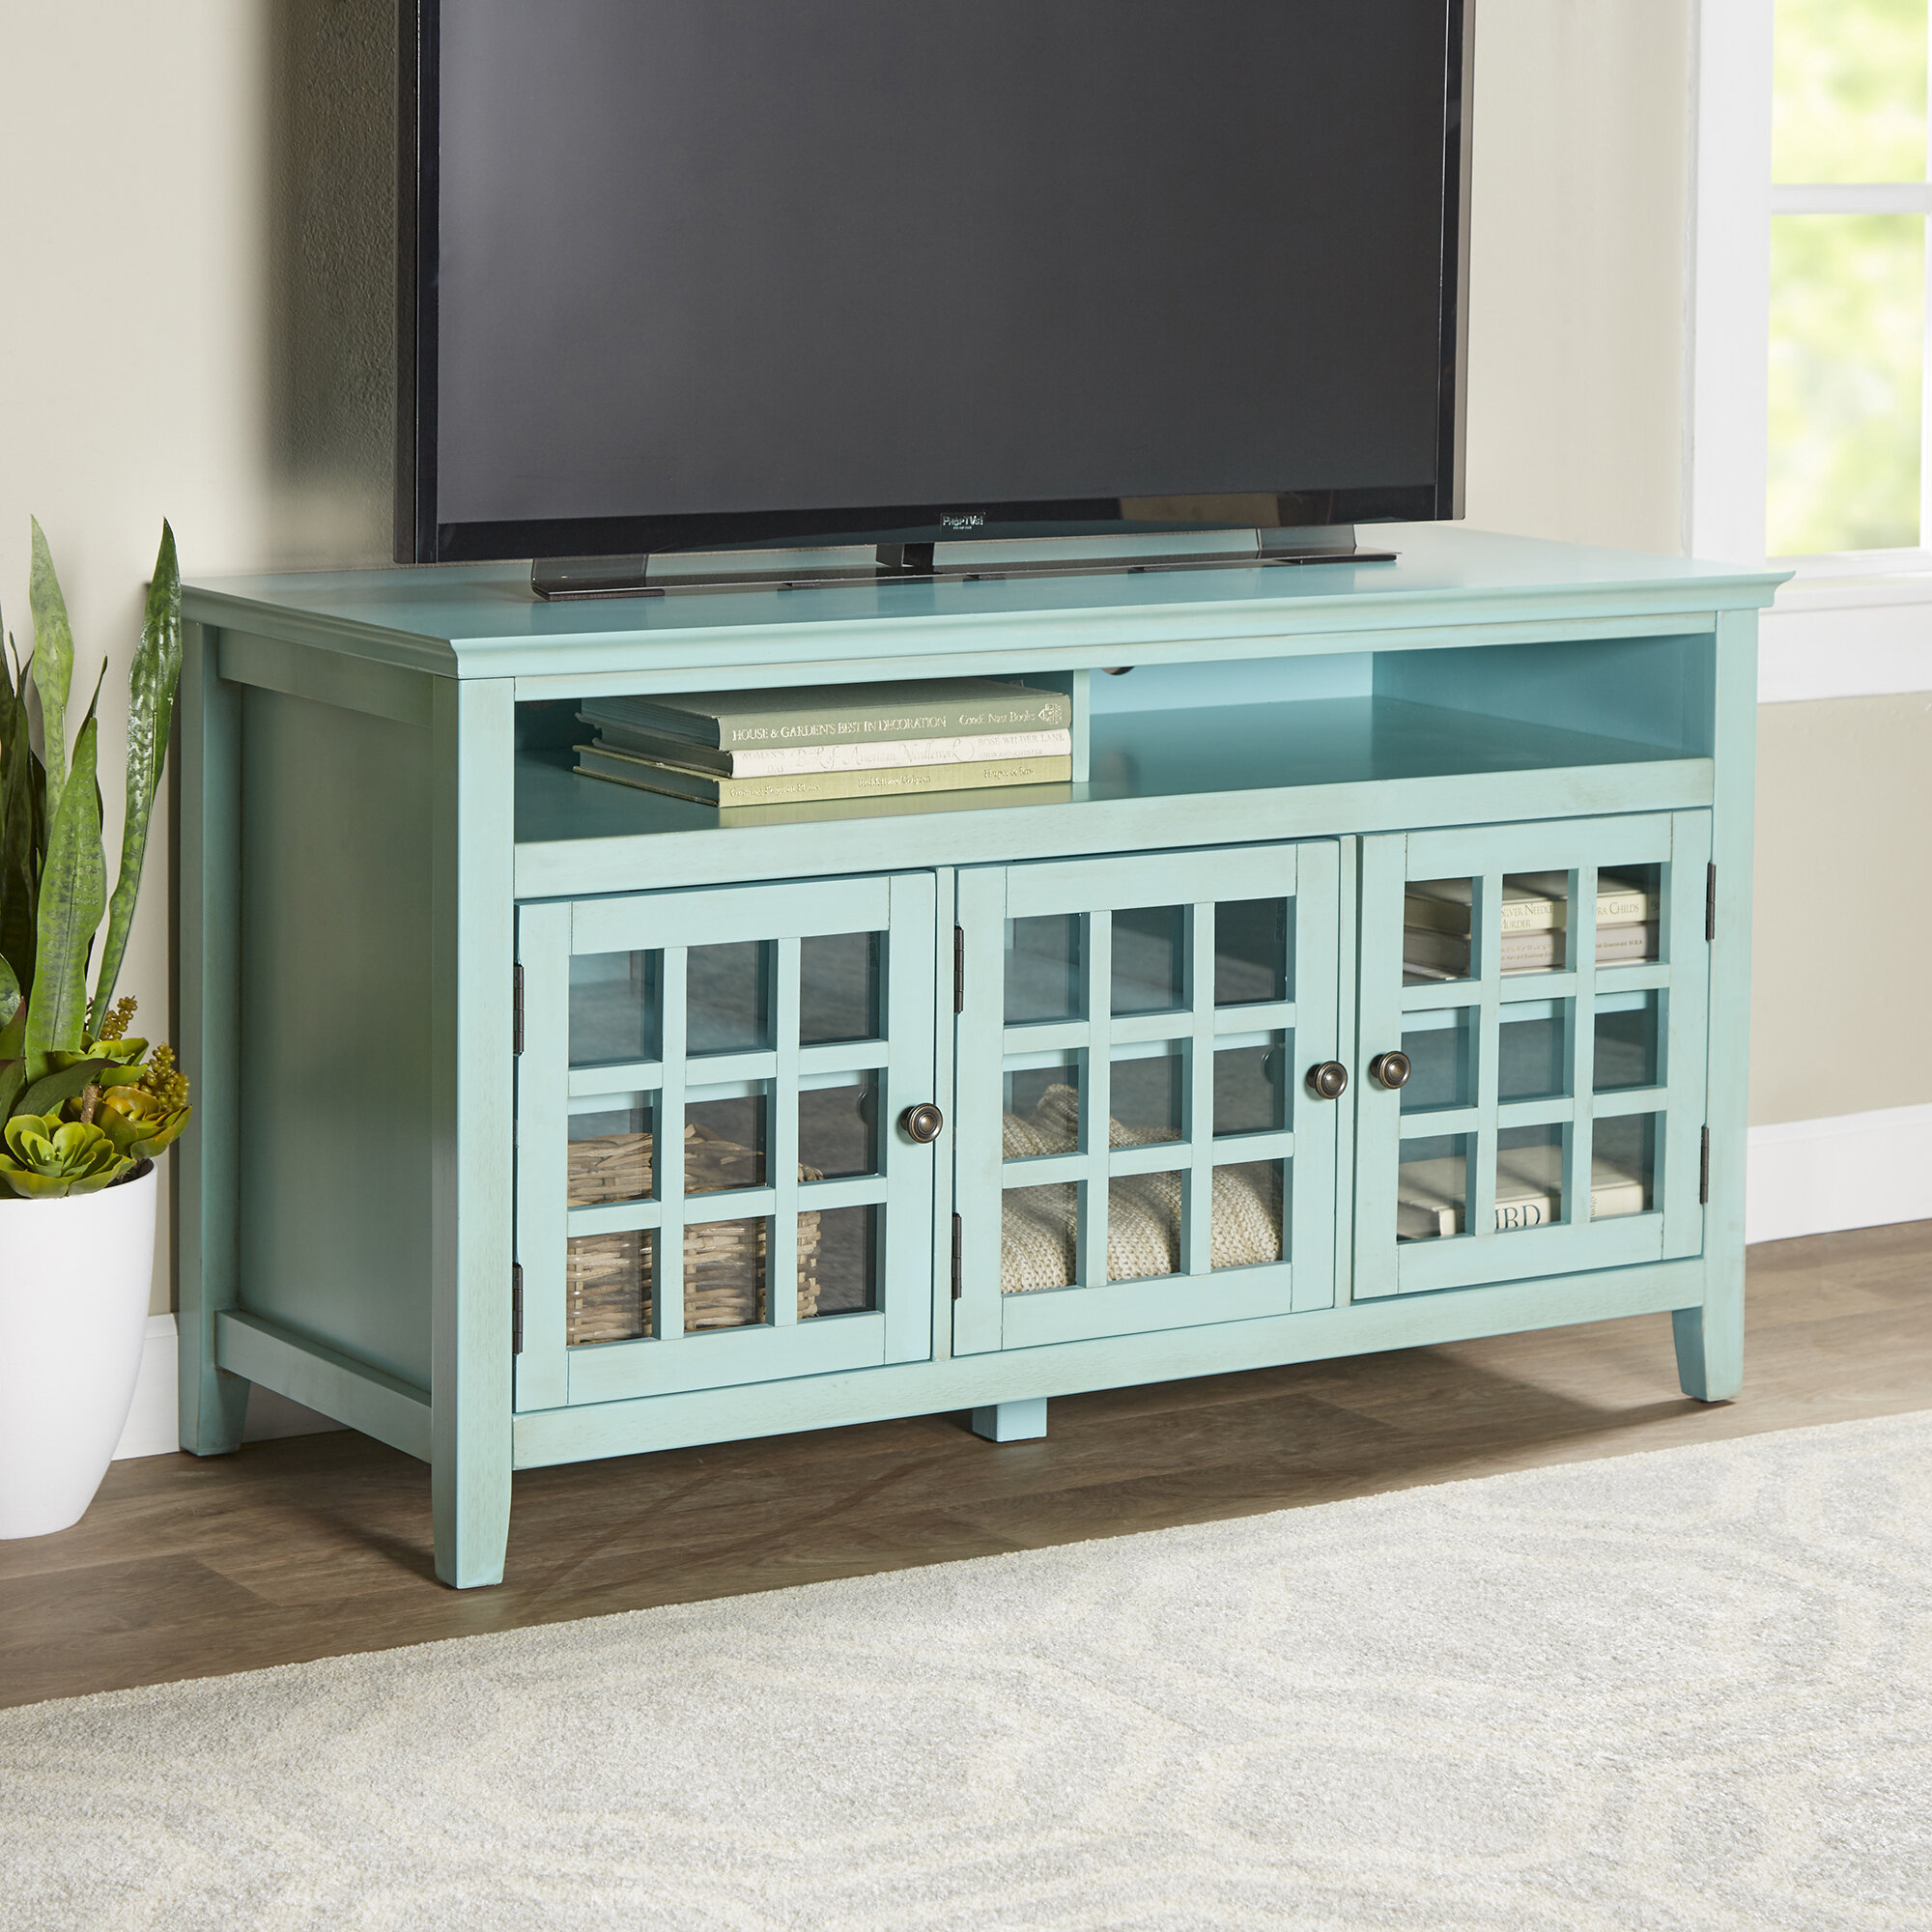 "Farmhouse & Rustic Blue Tv Stands | Birch Lane throughout Colefax Vintage Tv Stands for Tvs Up to 78"" (Image 19 of 30)"